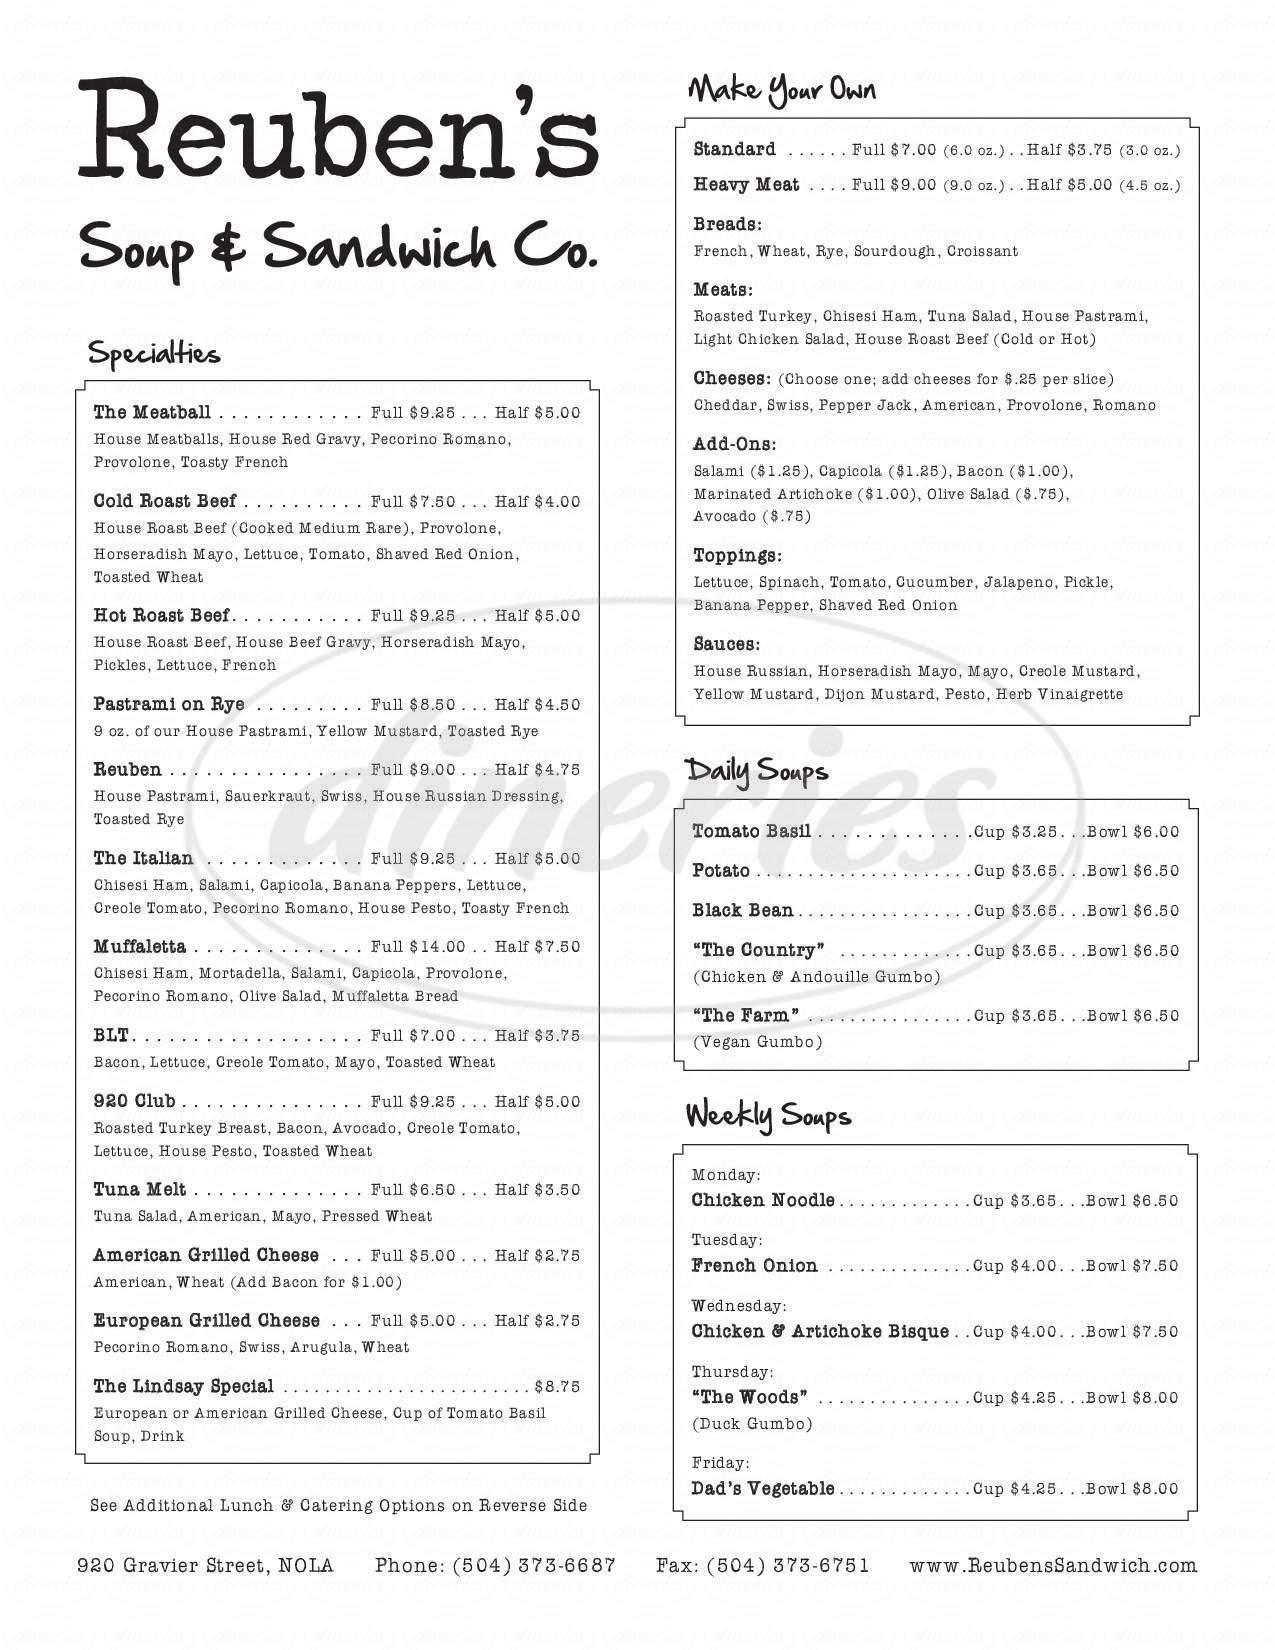 menu for Reuben's Soup & Sandwich Company